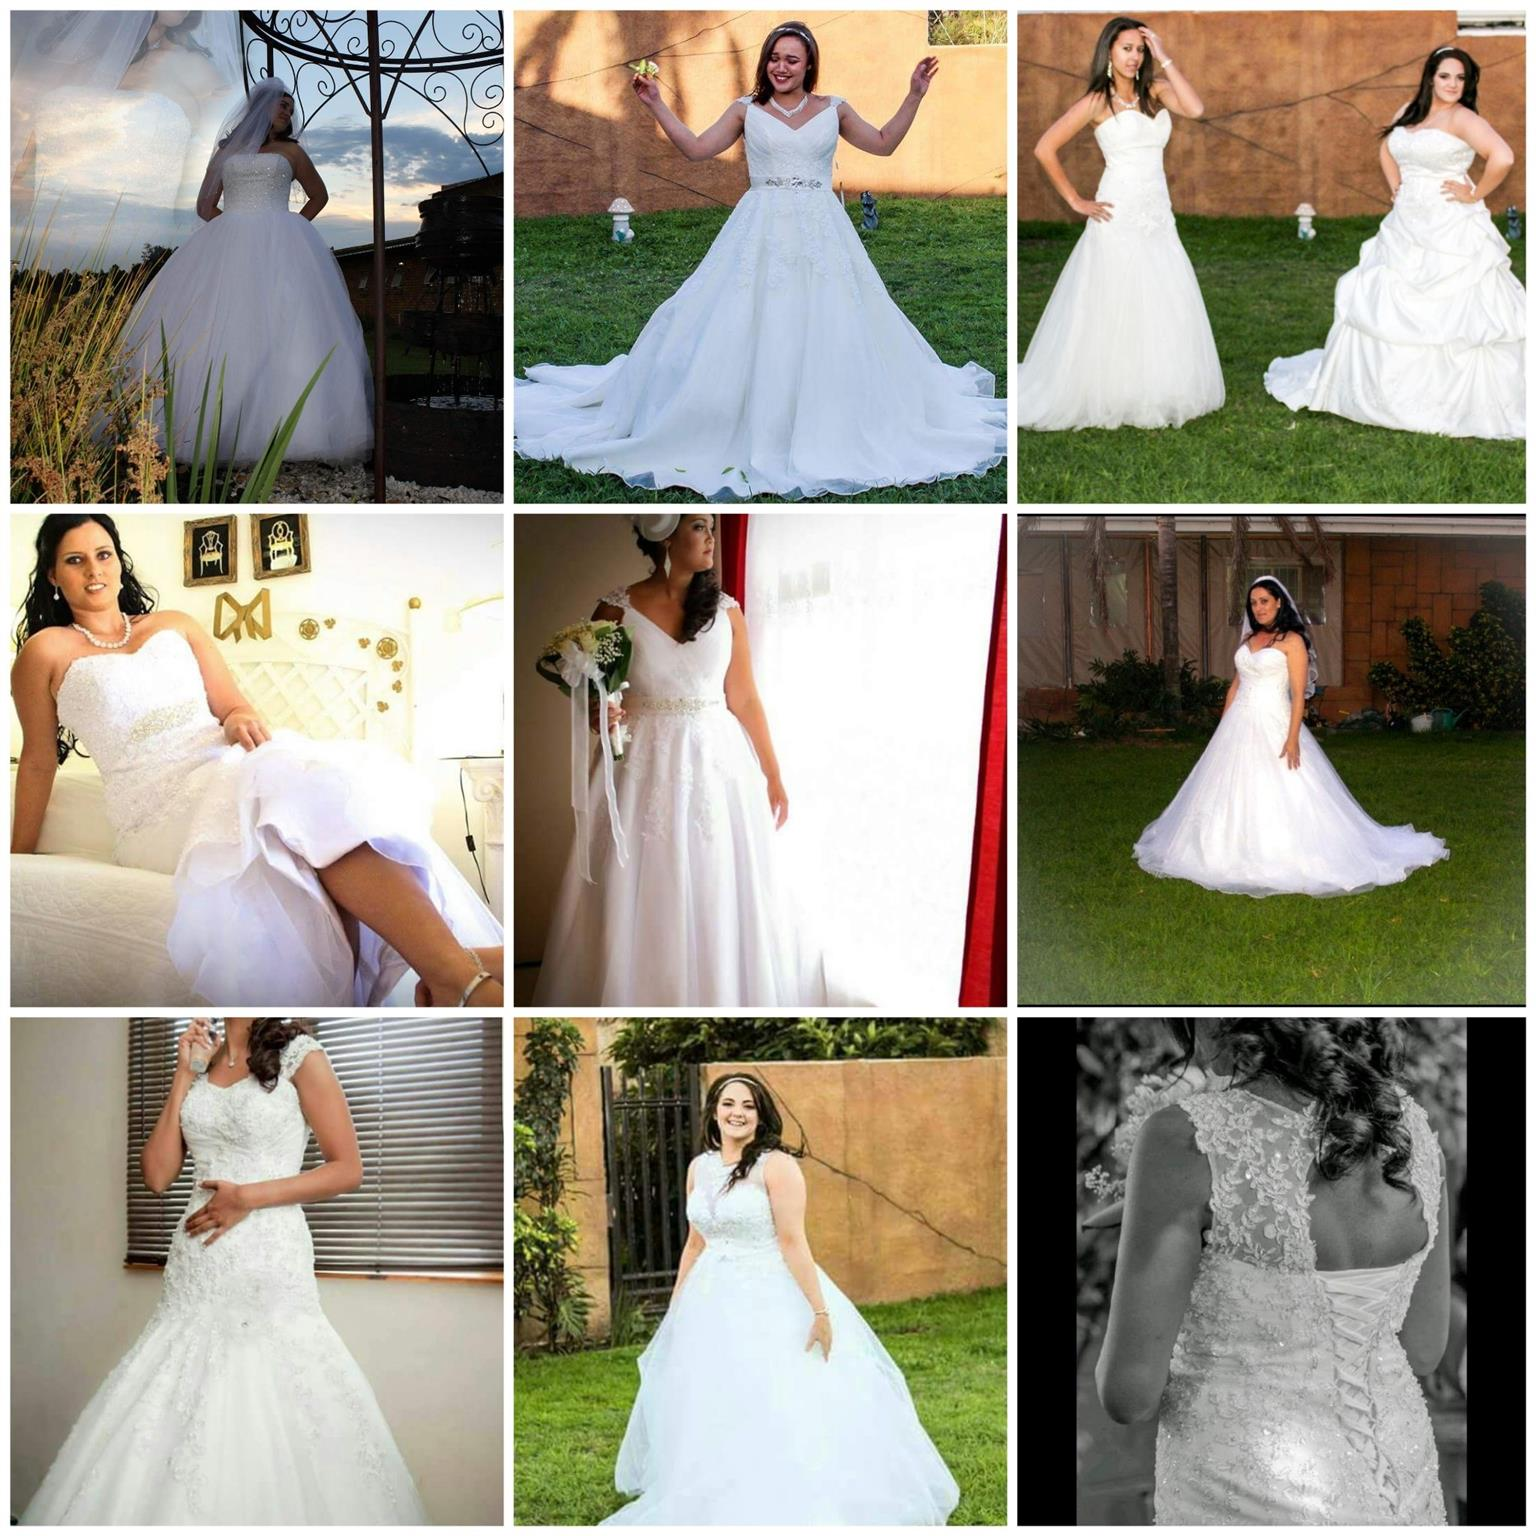 wedding dress hire cape town northern suburbs%0A Houston Gang Map